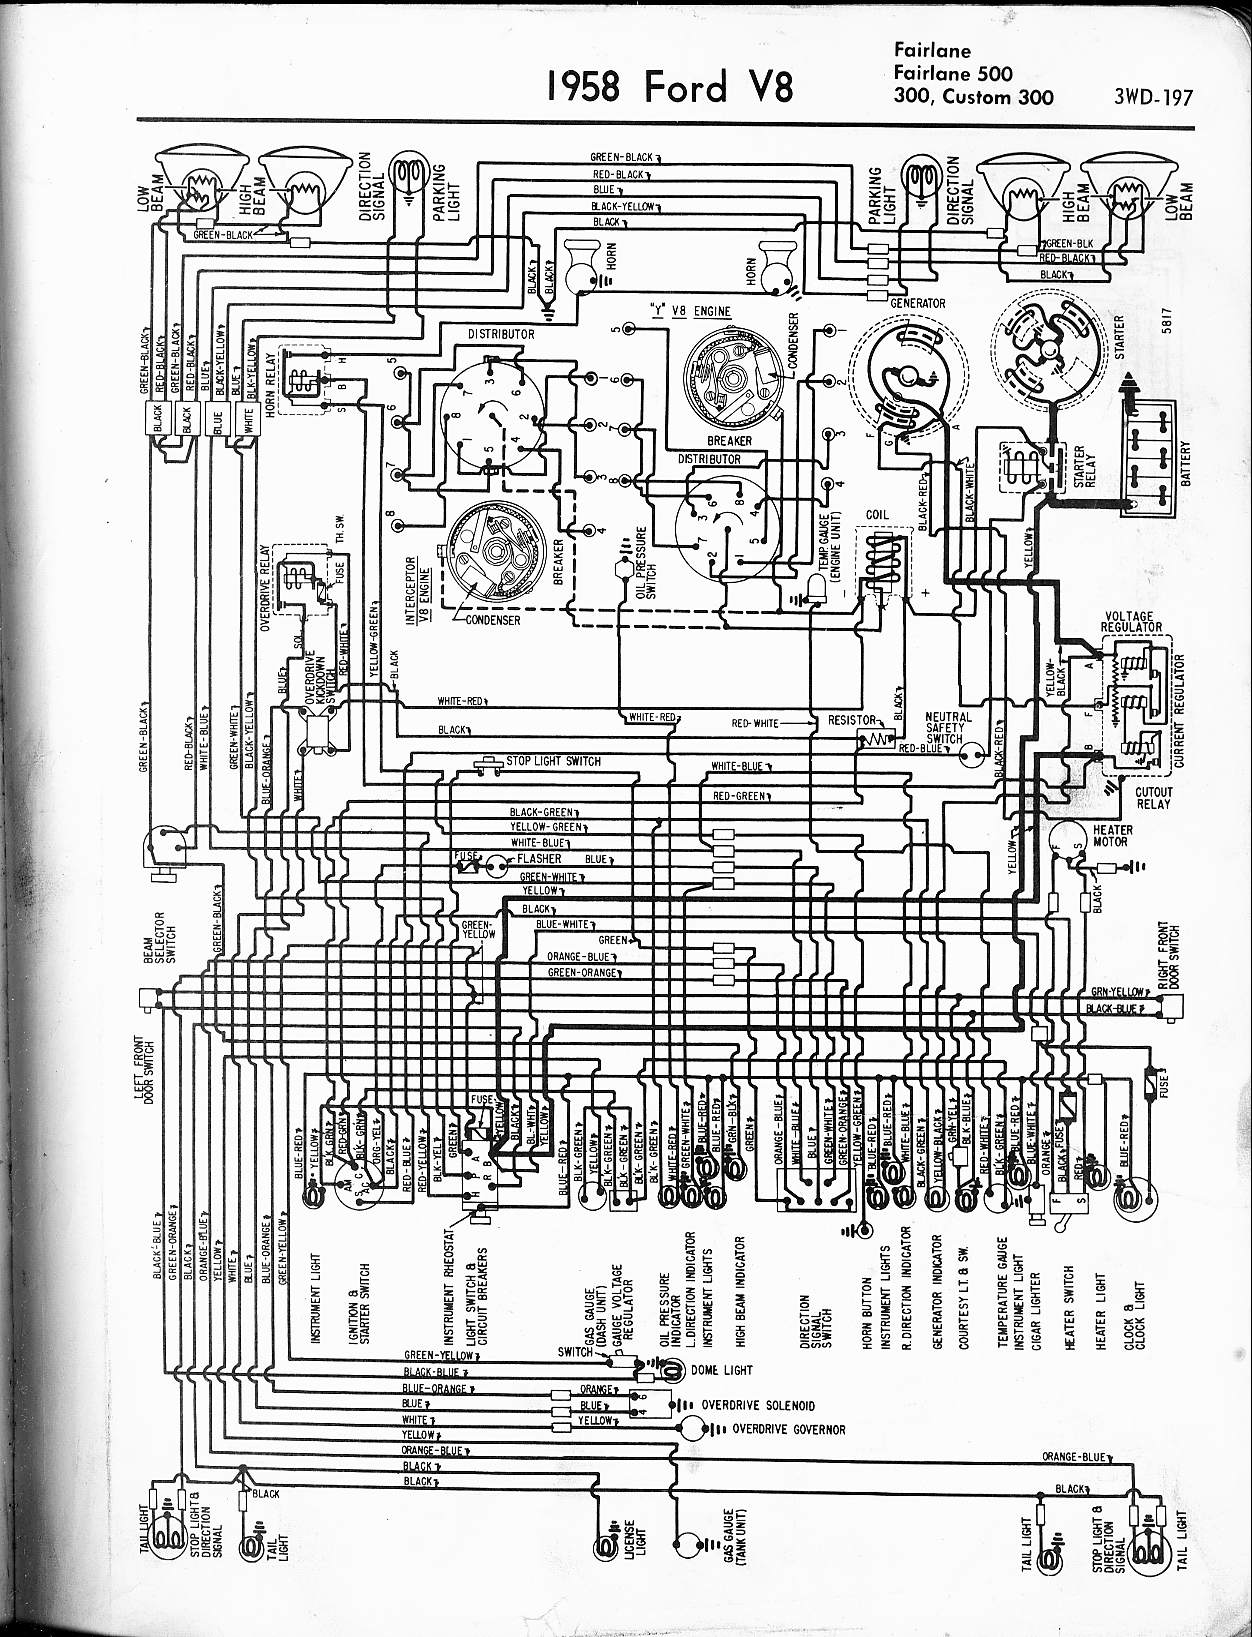 1971 Ford Torino Wiring Diagram Bookmark About As Well Ignition On 1978 F150 1973 Choke Library Rh 16 15 2 Bitmaineurope De F100 Truck